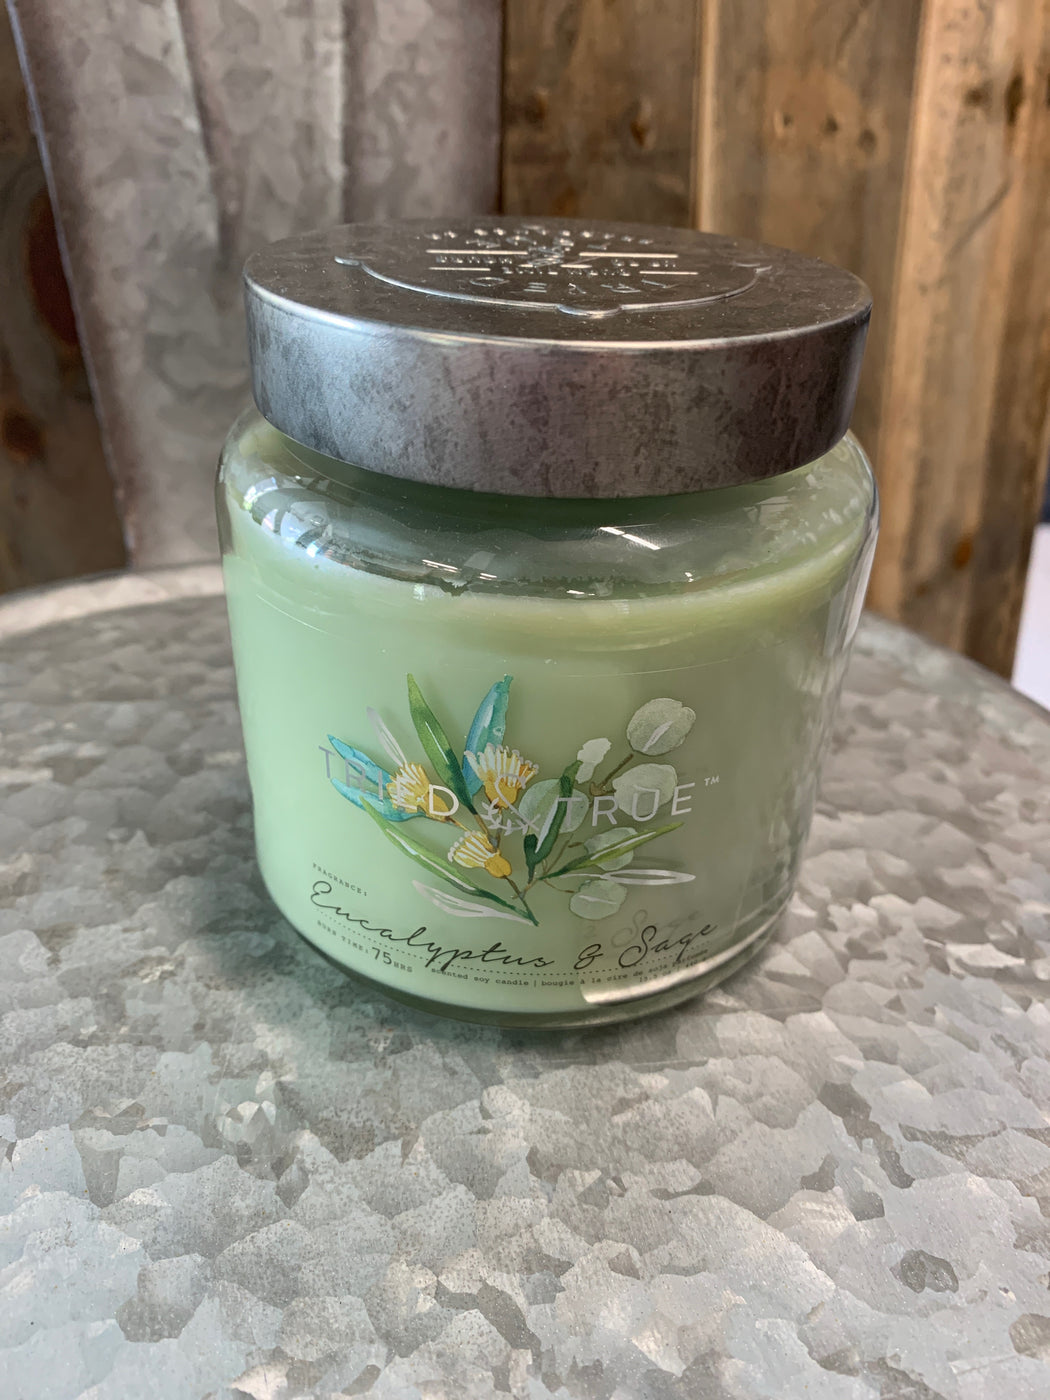 Enjoy the natural scents and cottage garden-inspired design of the Tried & True Eucalyptus & Sage Jar Candle in any room of your home. Each is made with soy wax and accented with galvanized metal for a rustic farmhouse touch.